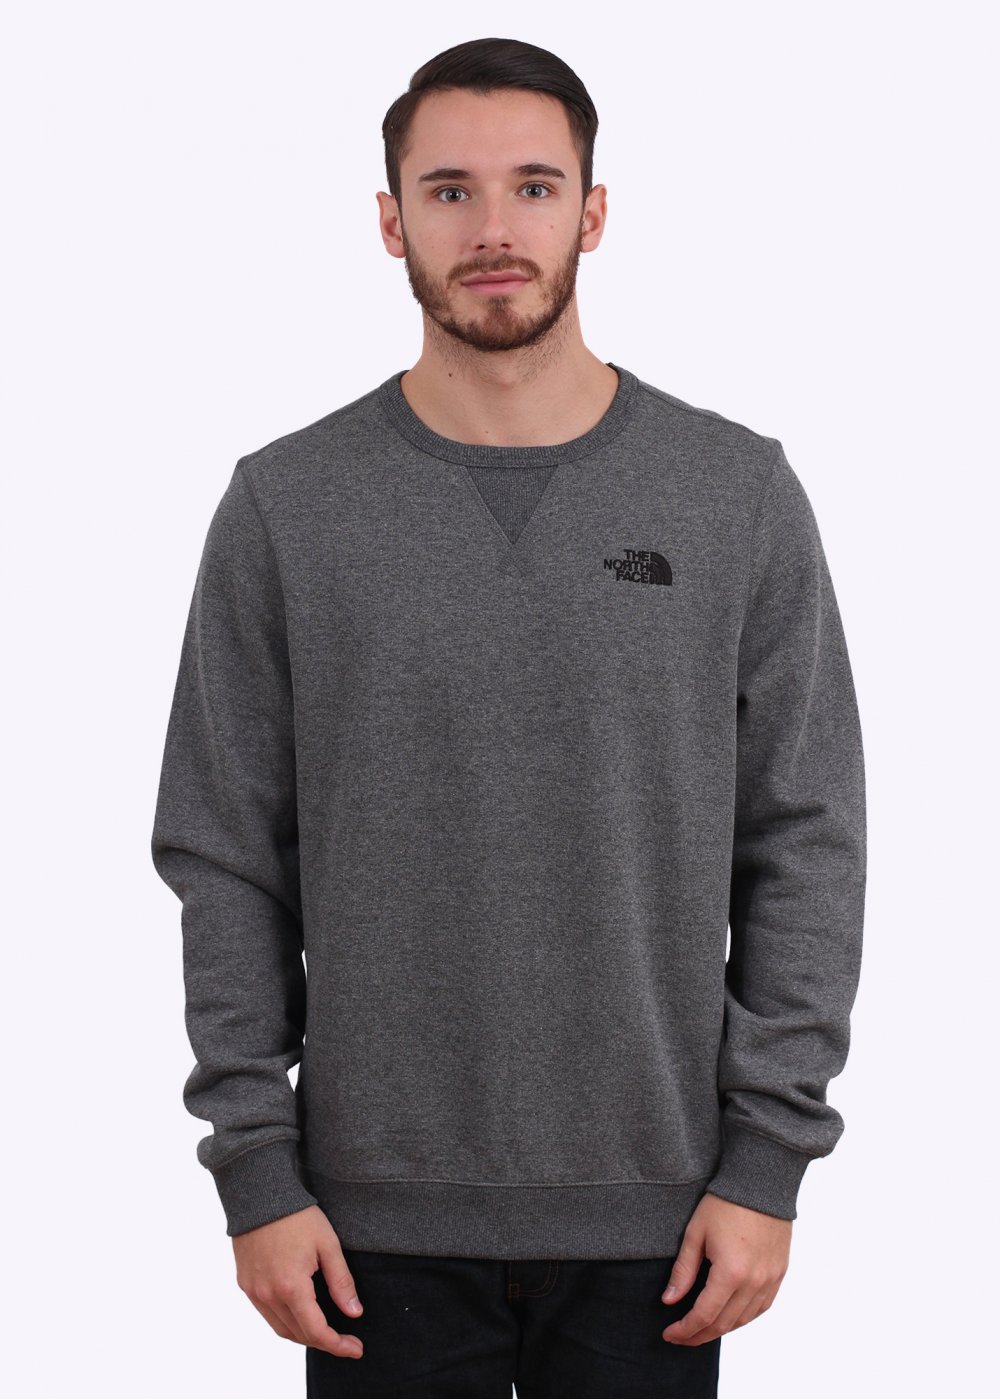 be01656b5 The North Face Street Fleece Pullover Sweater - Graphite Grey Heather